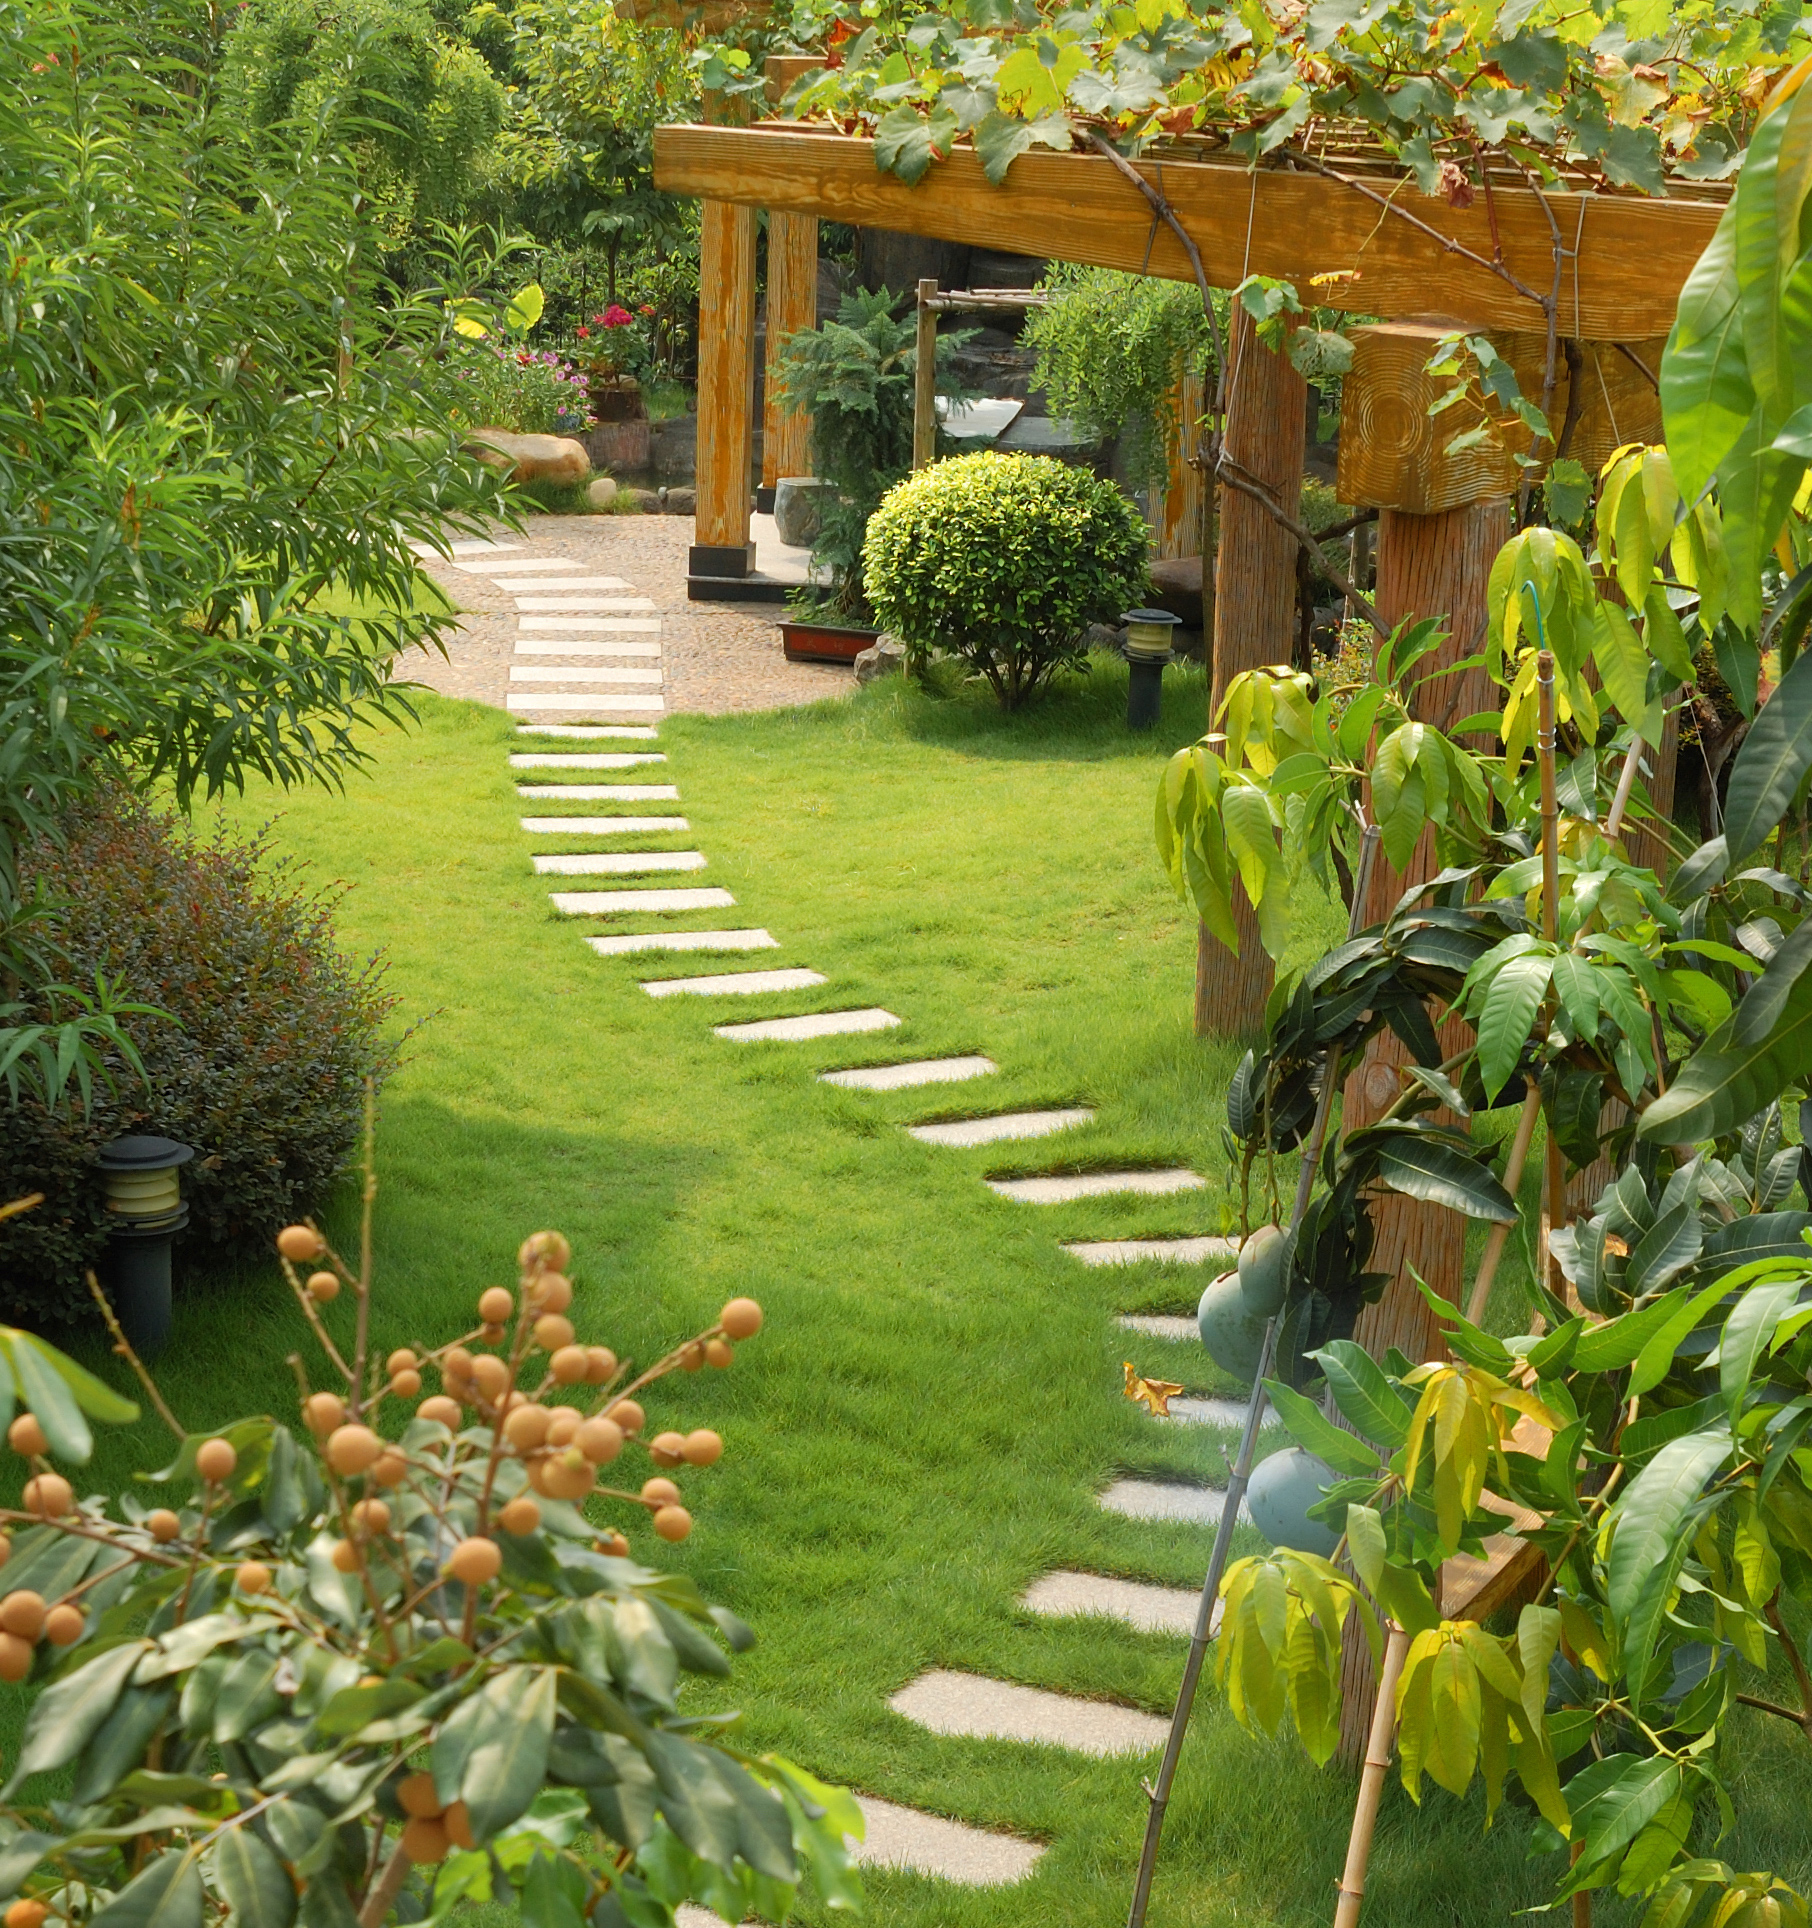 Garden landscape ideas to make it more appealing